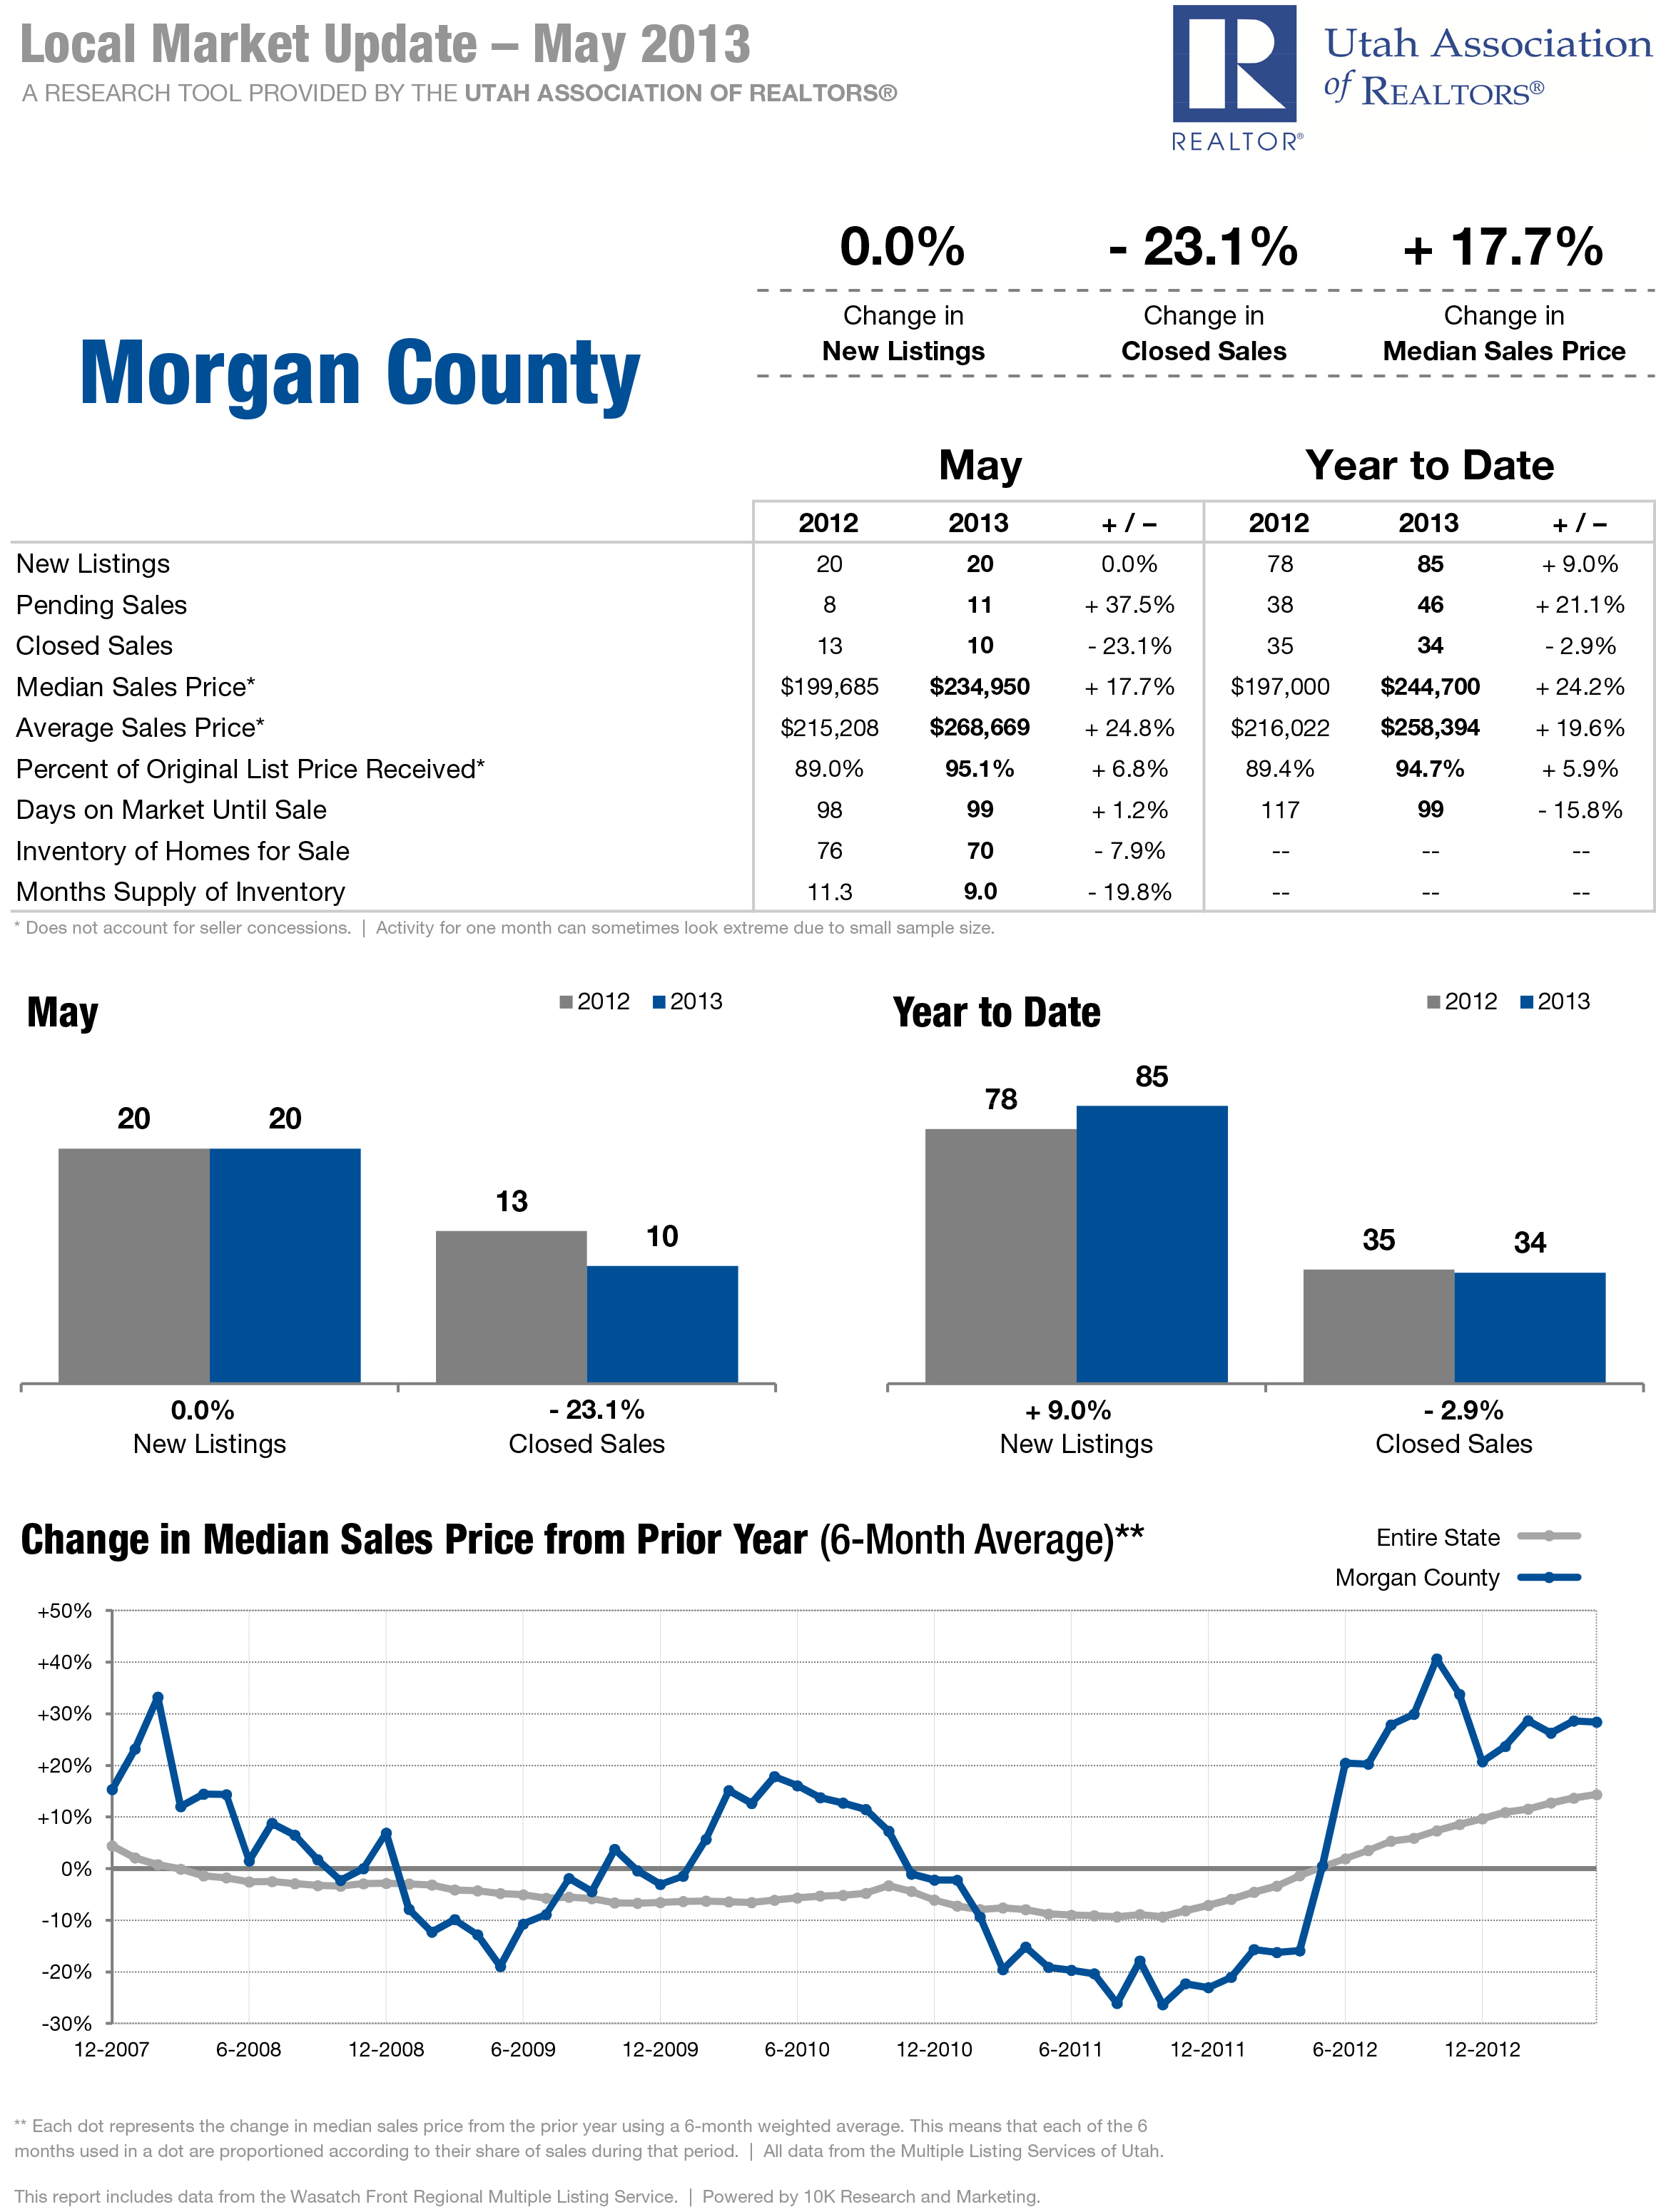 Morgan County Local Market Update for May 2013